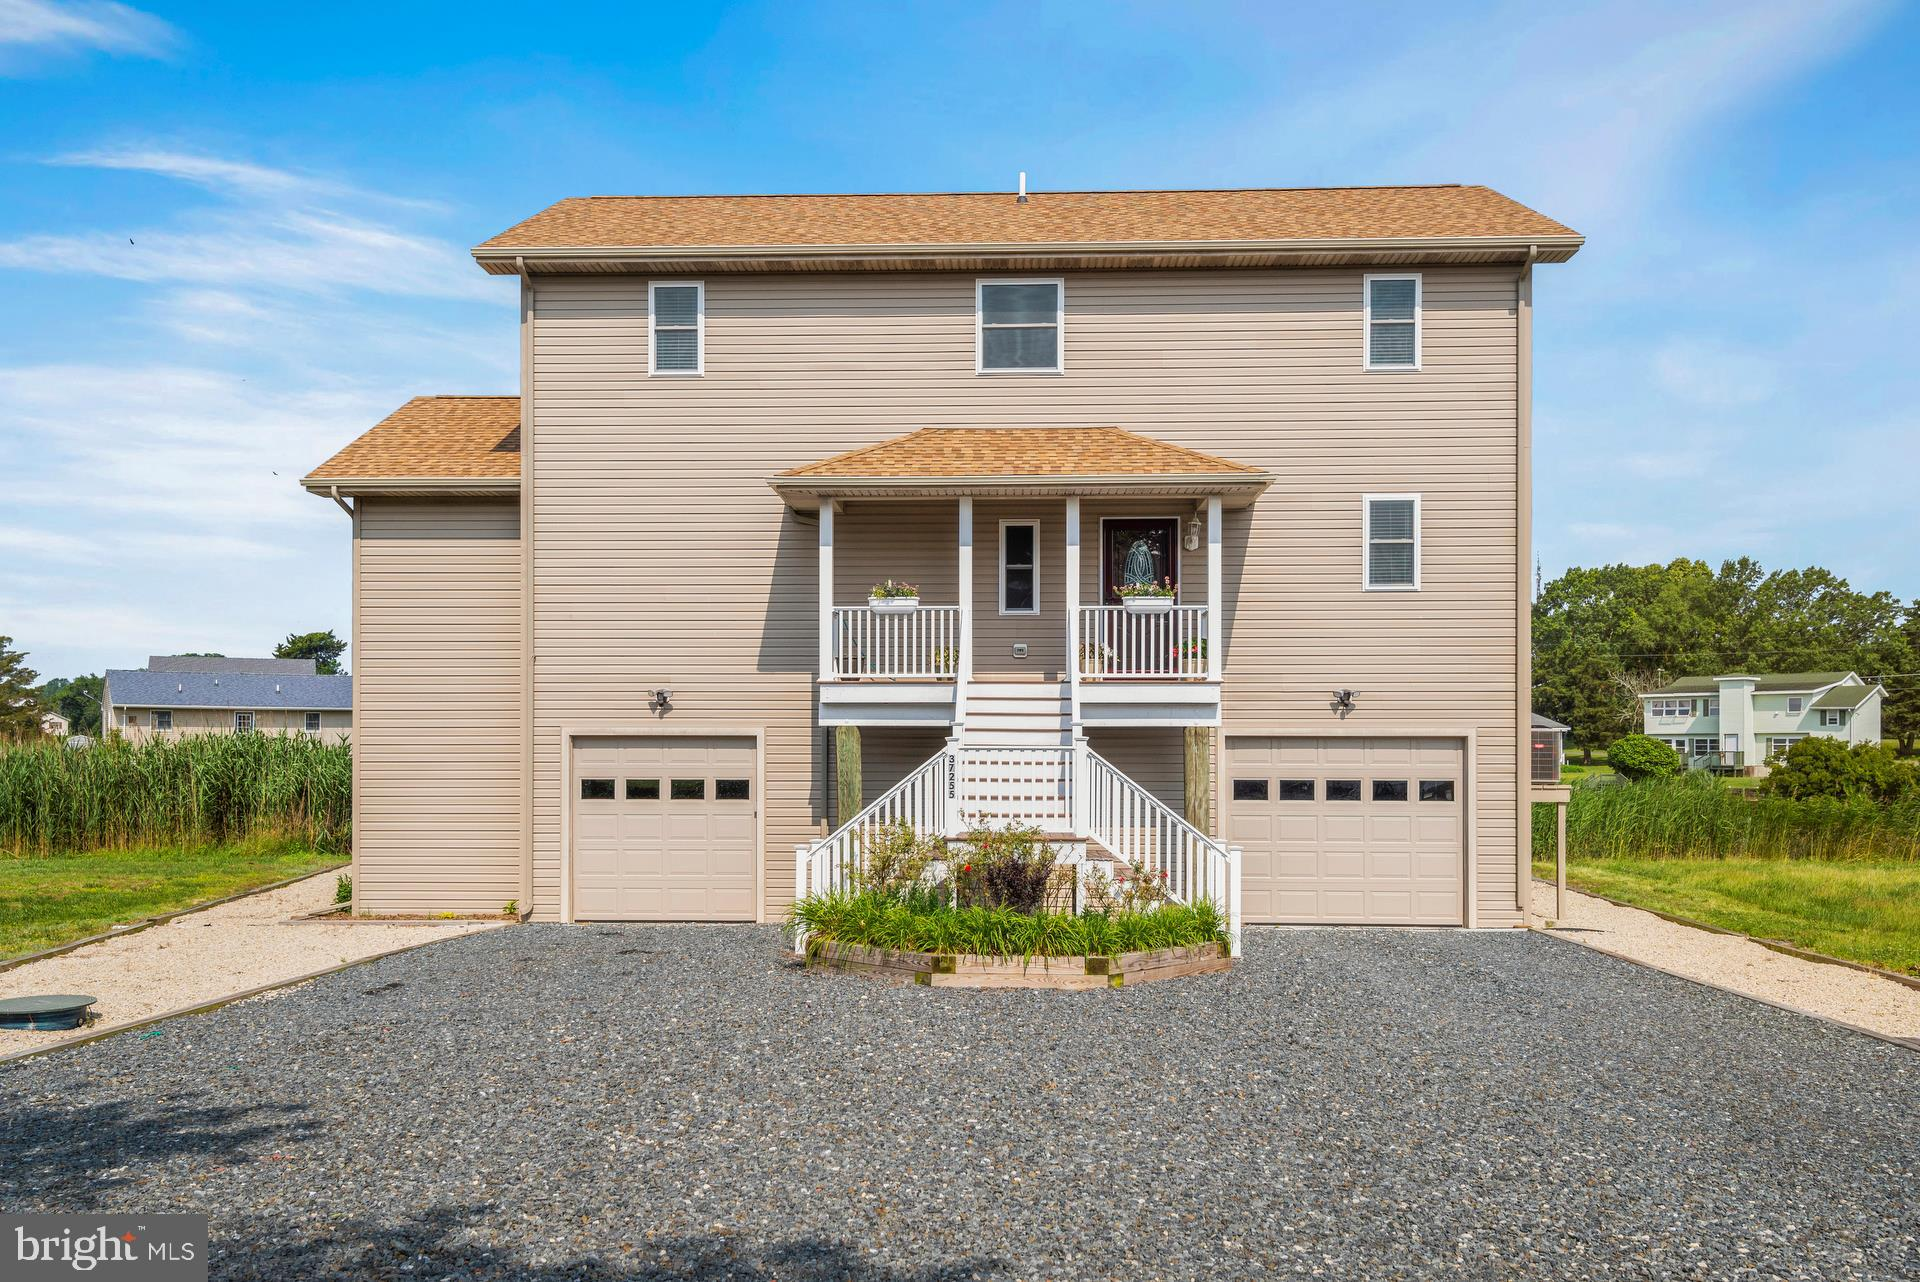 37255 SAIL COURT, GREENBACKVILLE, VA 23356